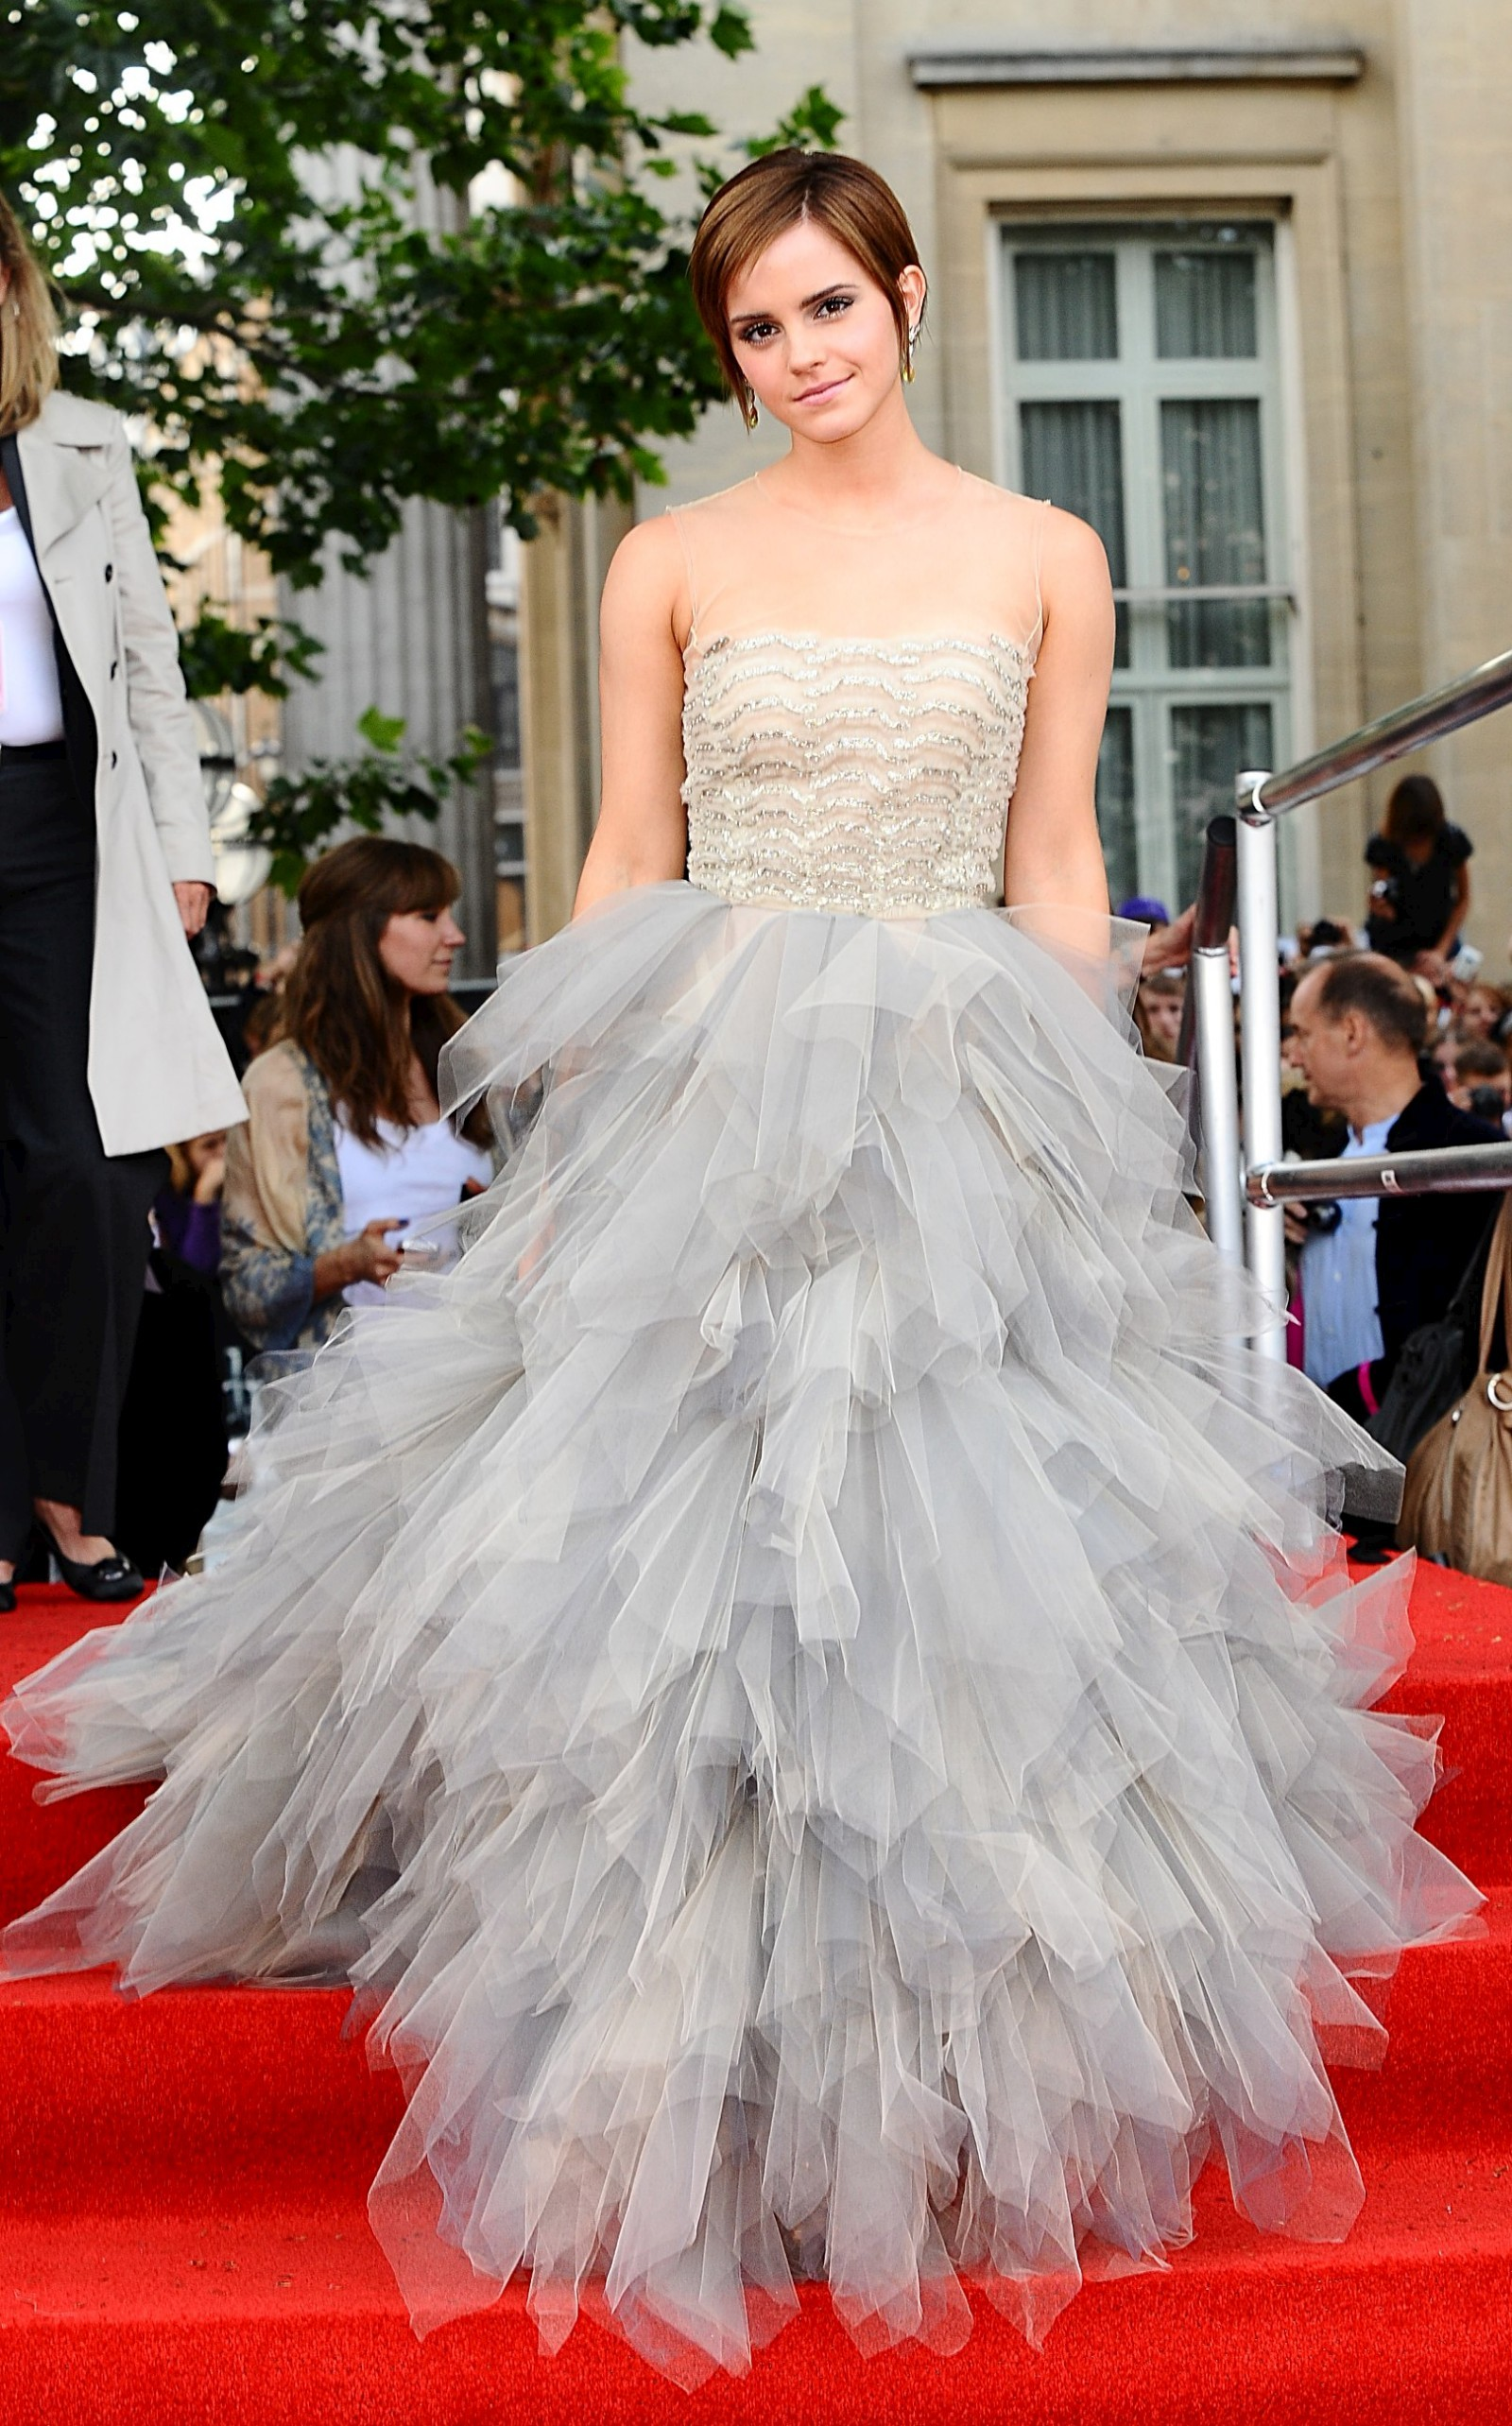 Emma Watson Harry Potter And The Deathly Hallows Part 2 Premiere Dress Los looks de Em...